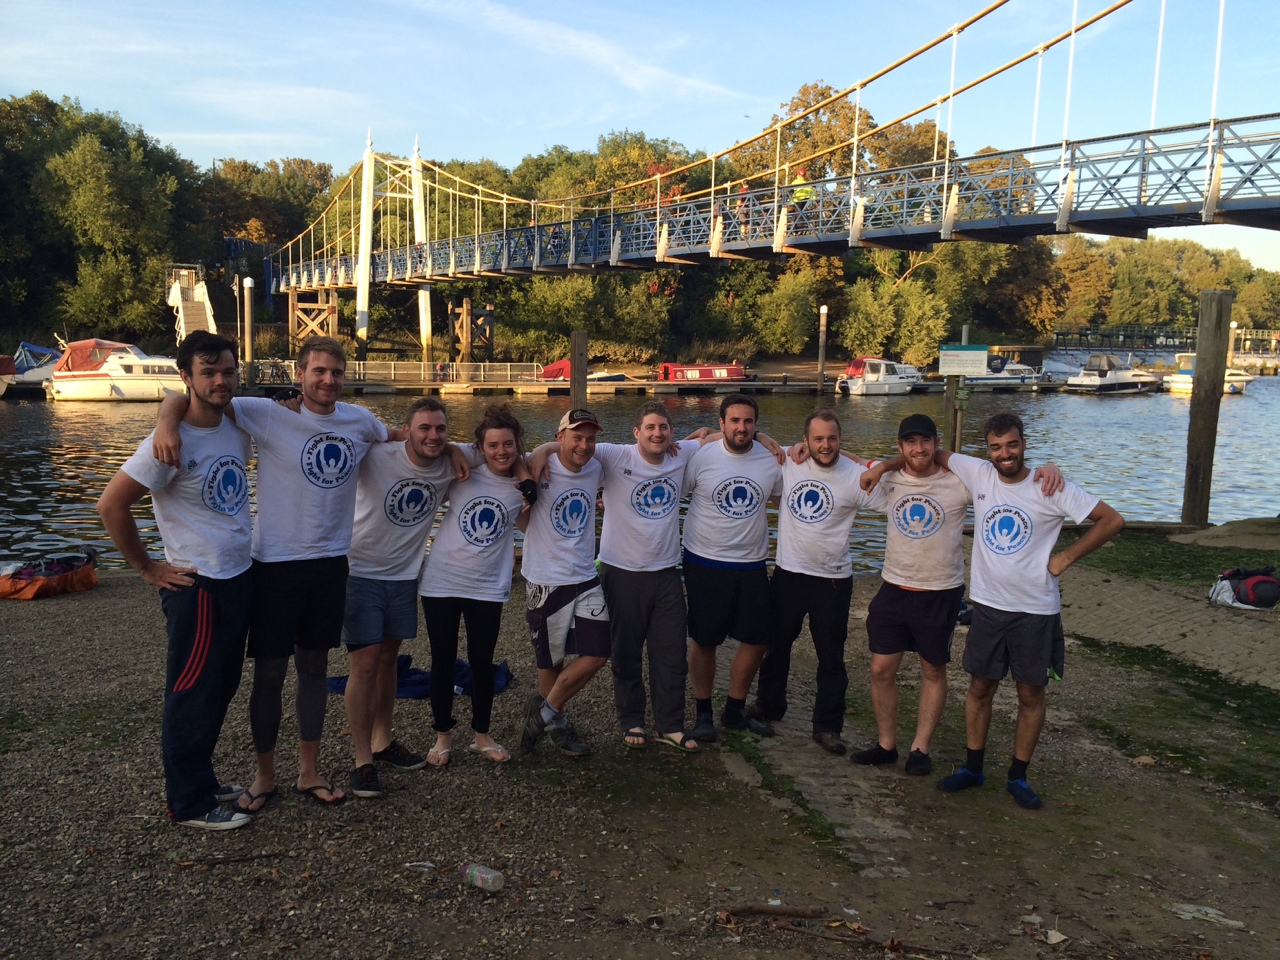 Summer '14:  We raised funds for charity partner of the year Fight For Peace by canoeing the entire length of the Thames